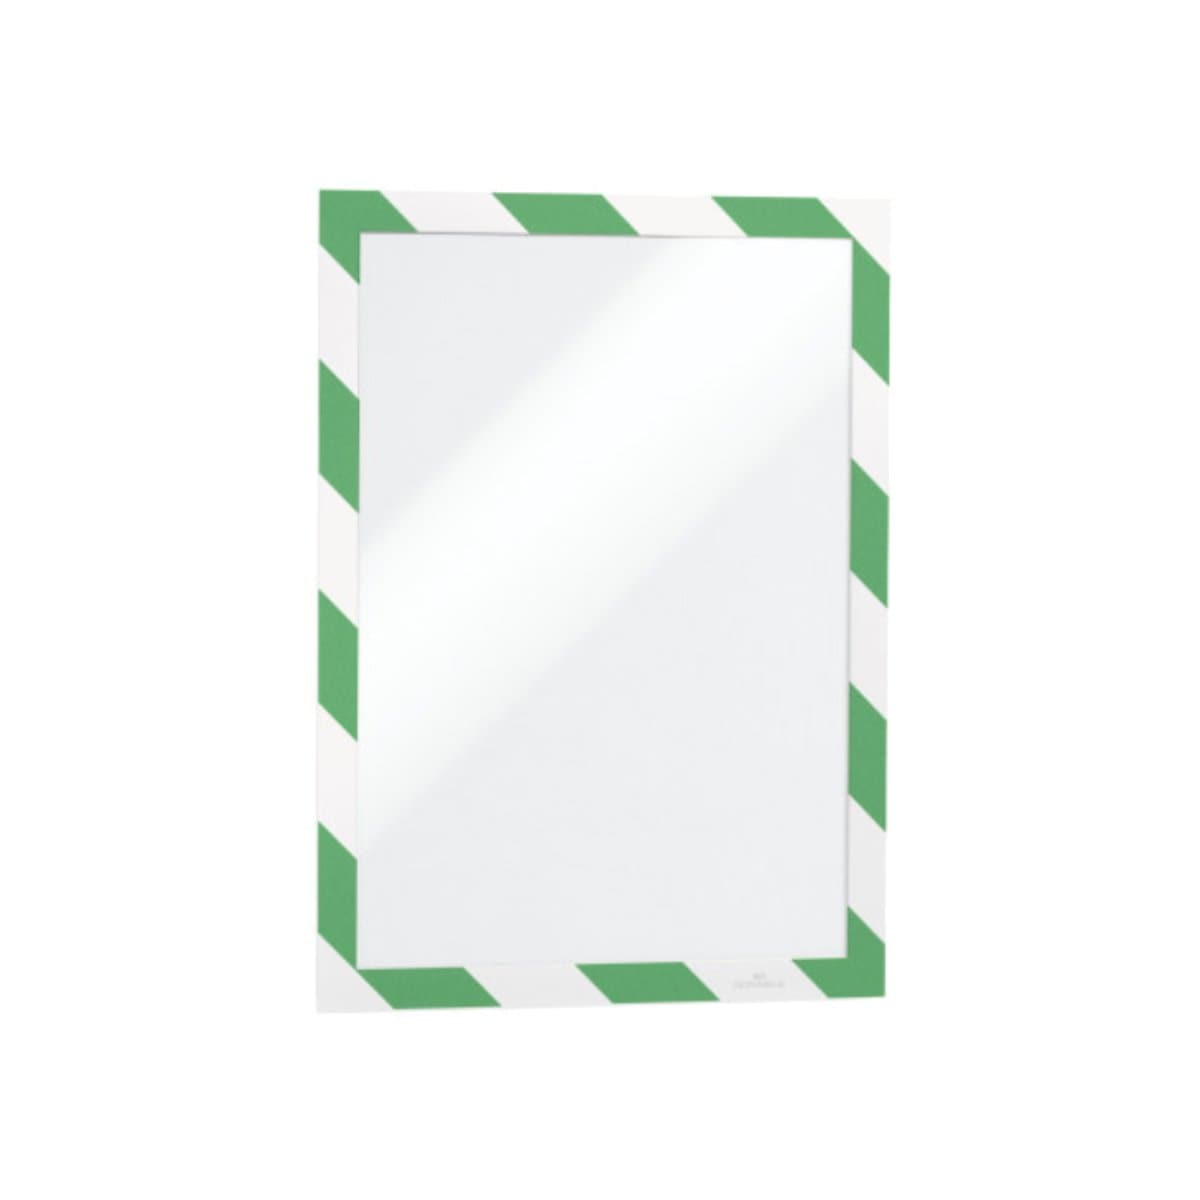 Durable DURAFRAME Security, Self-Adhesive Magnetic Frame A4, 2/pack, Green/White